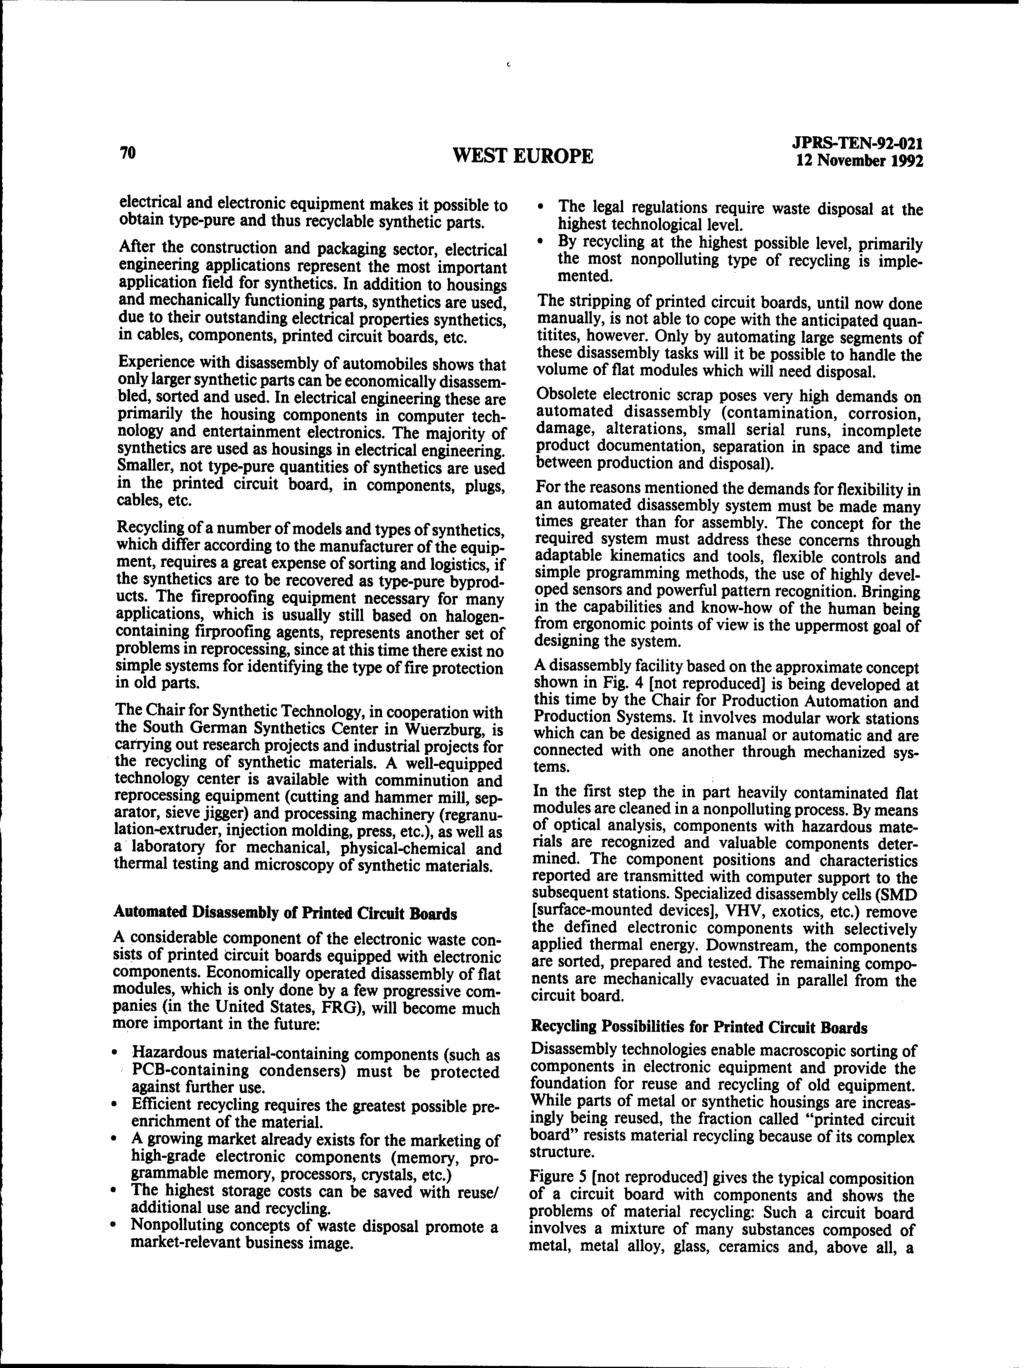 Environmental Issues Pdf Surfacemounted Junction Box Ap9 Abb Oy Wiring Accessories 70 West Europe Jprs Ten 92 021 12 November 1992 Electrical And Electronic